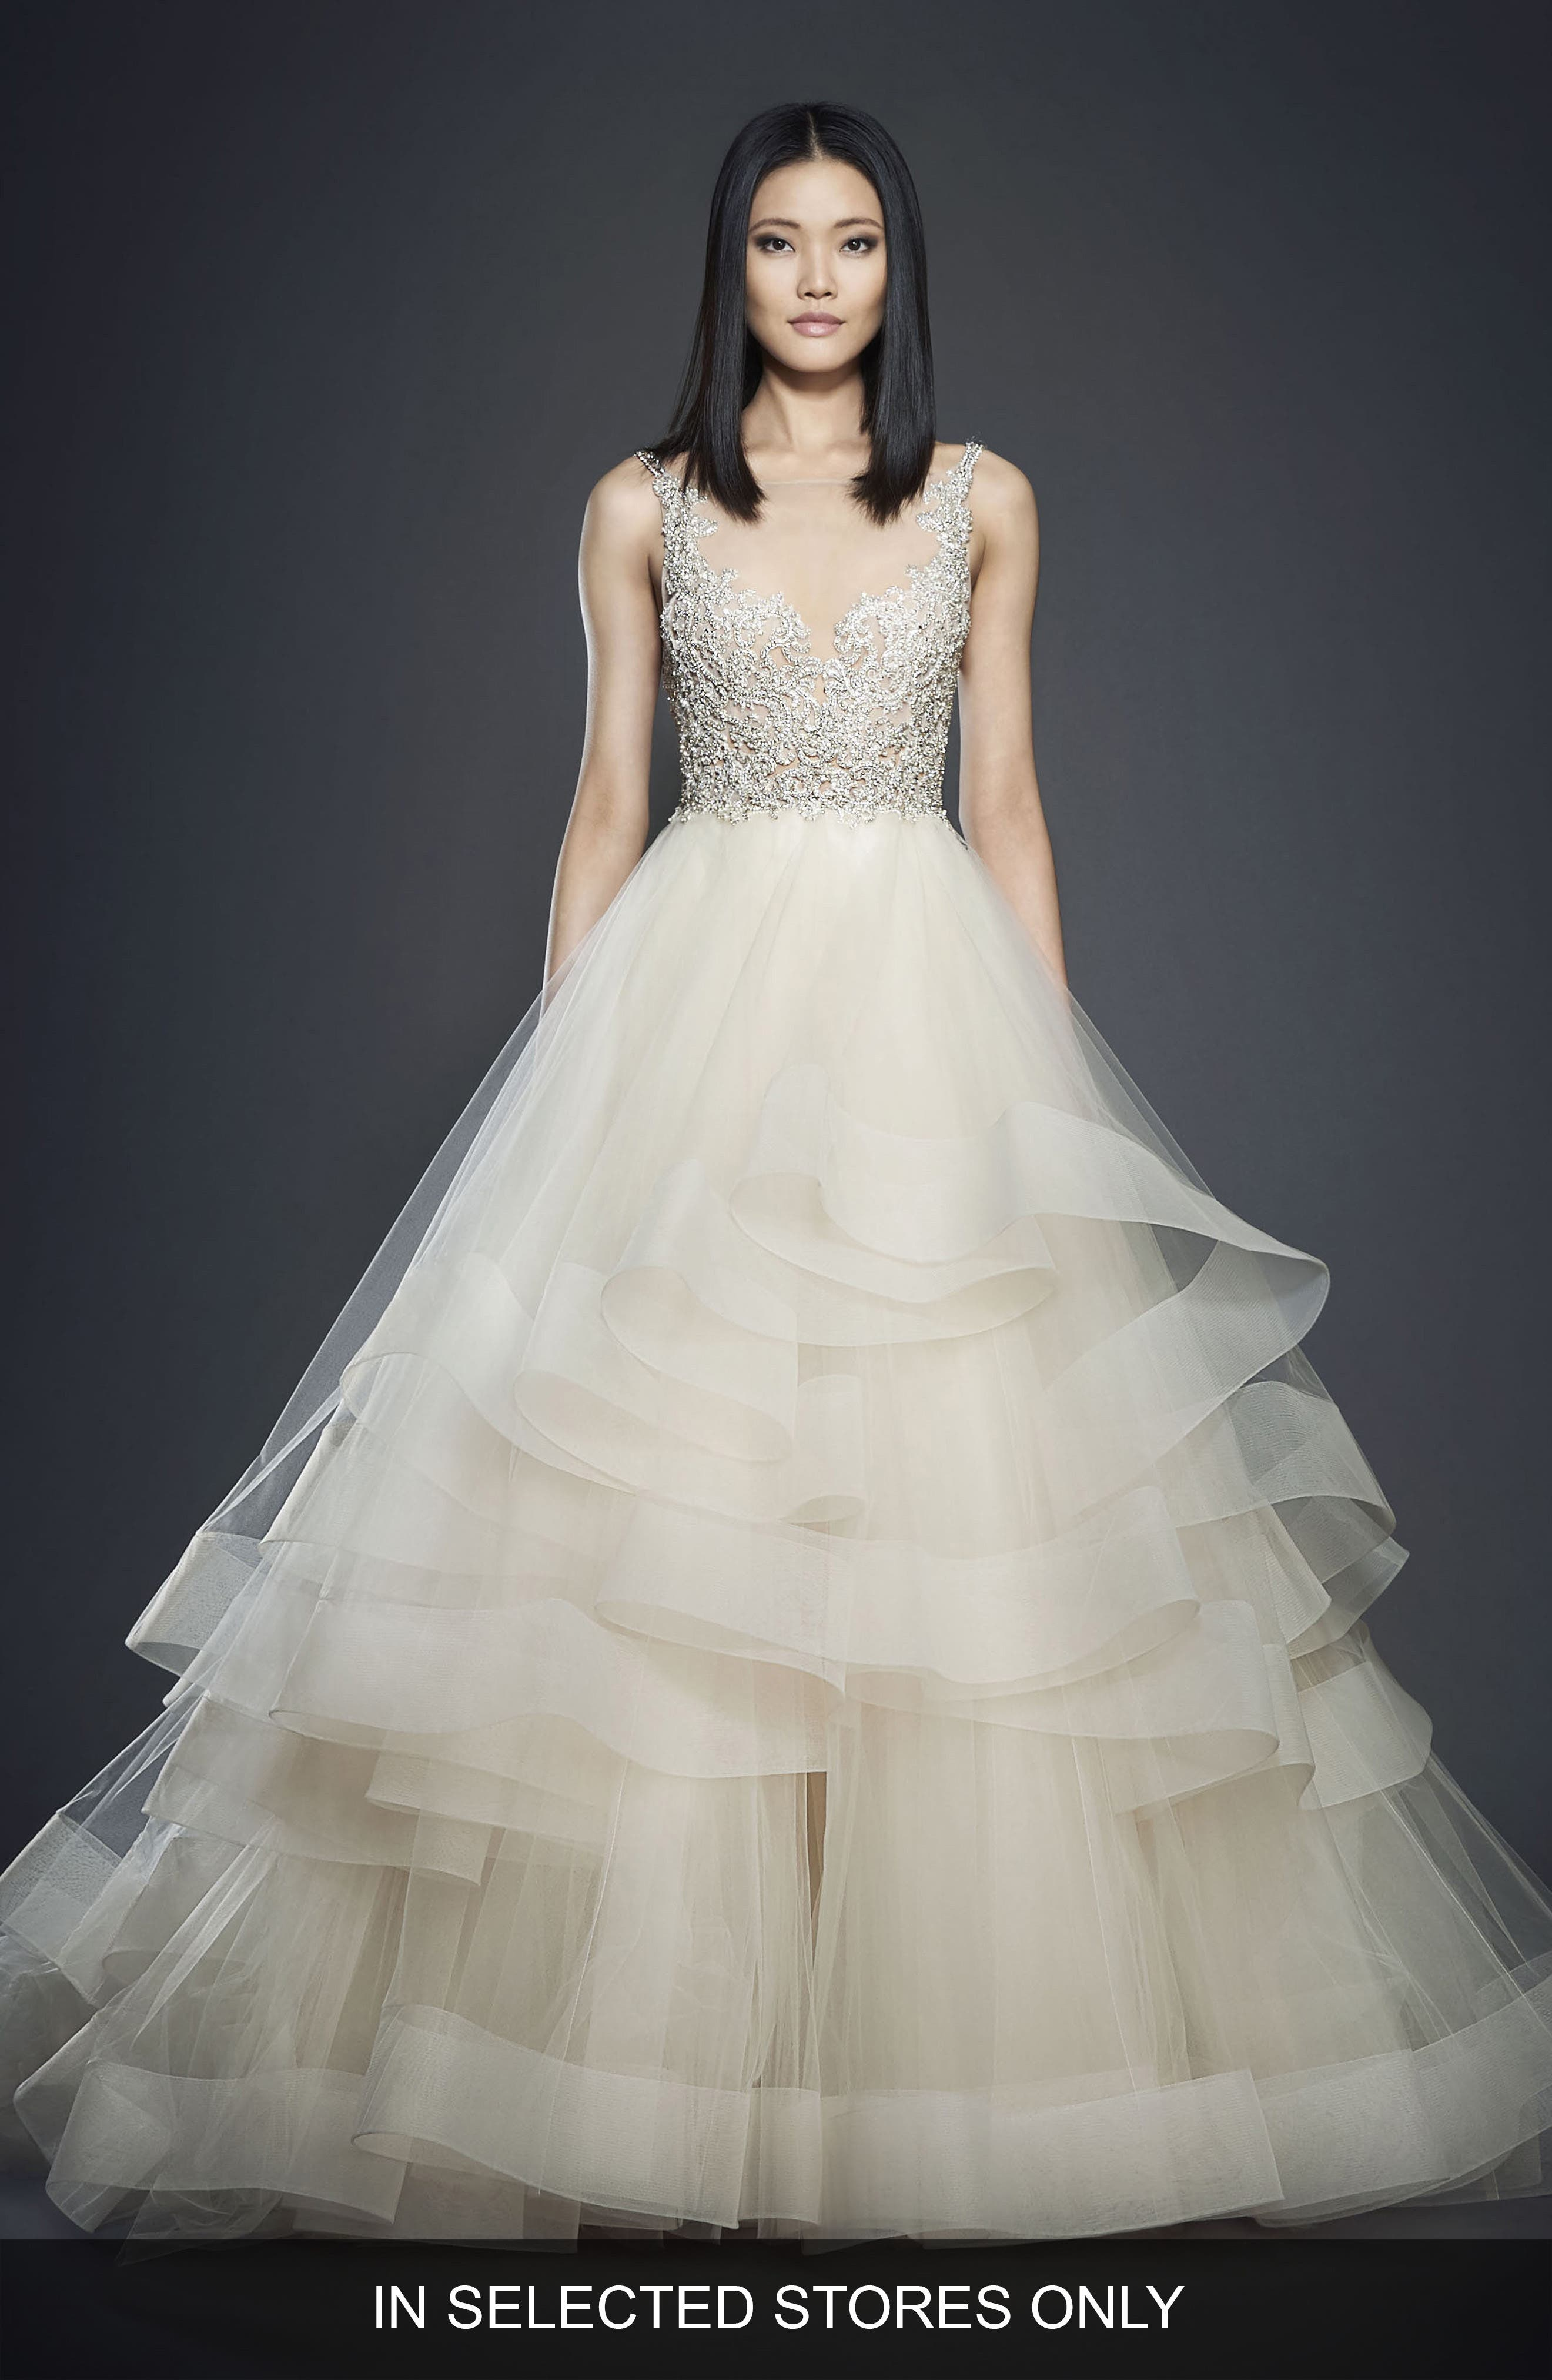 Crystal Embellished Layered Organza Ballgown,                             Main thumbnail 1, color,                             Champagne